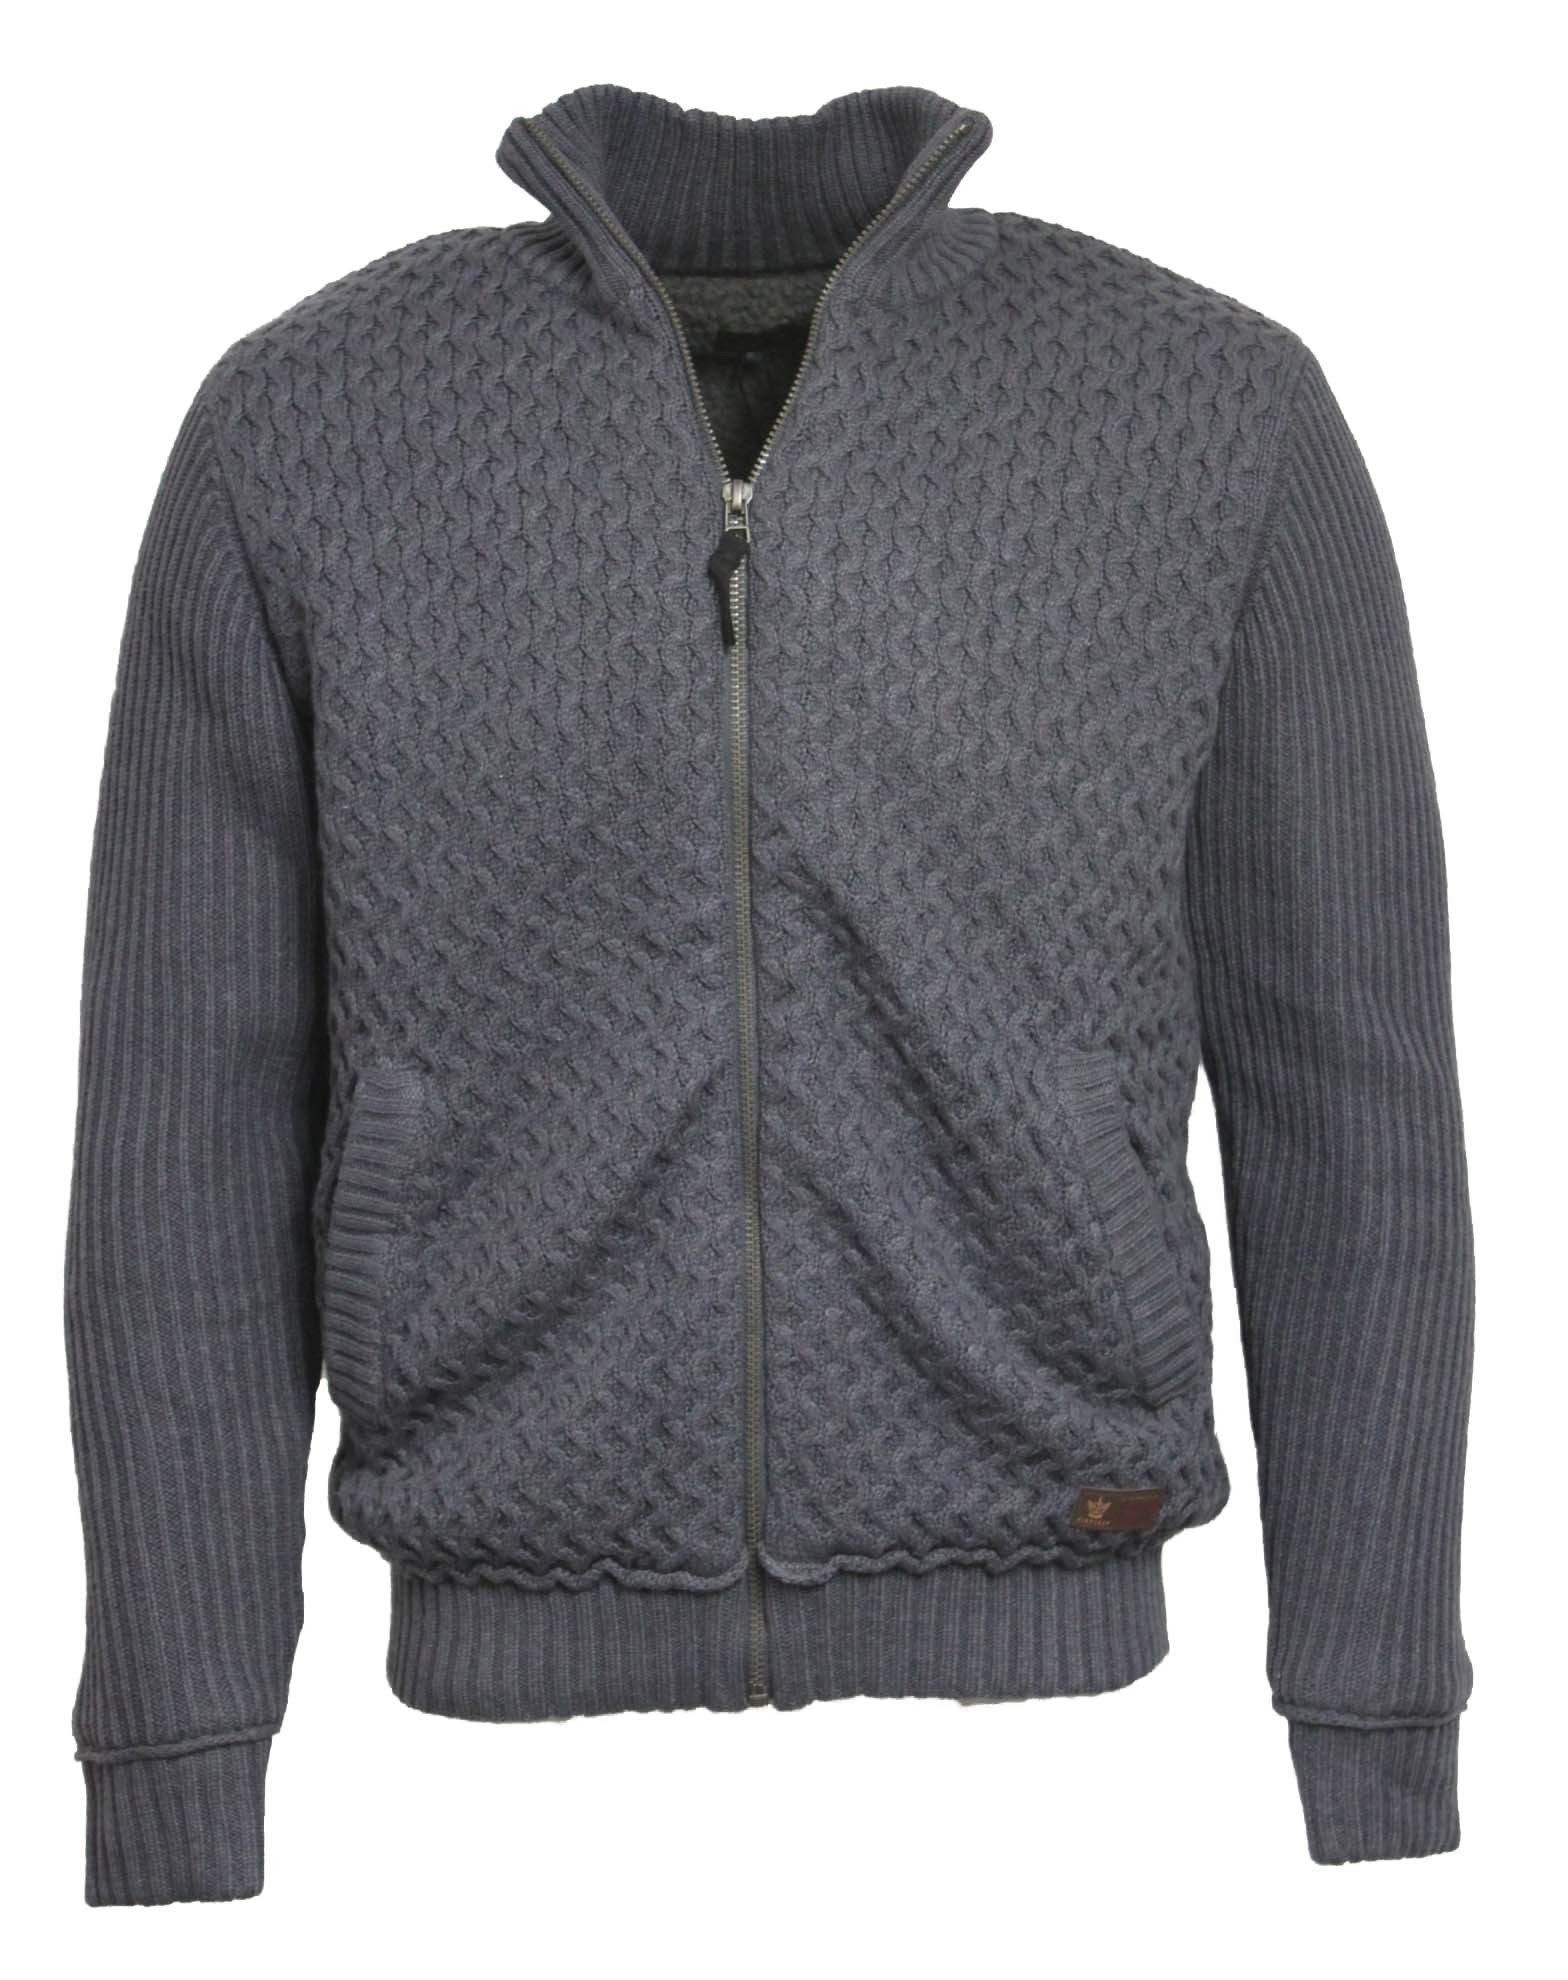 mens cable knitted cardigan promotion